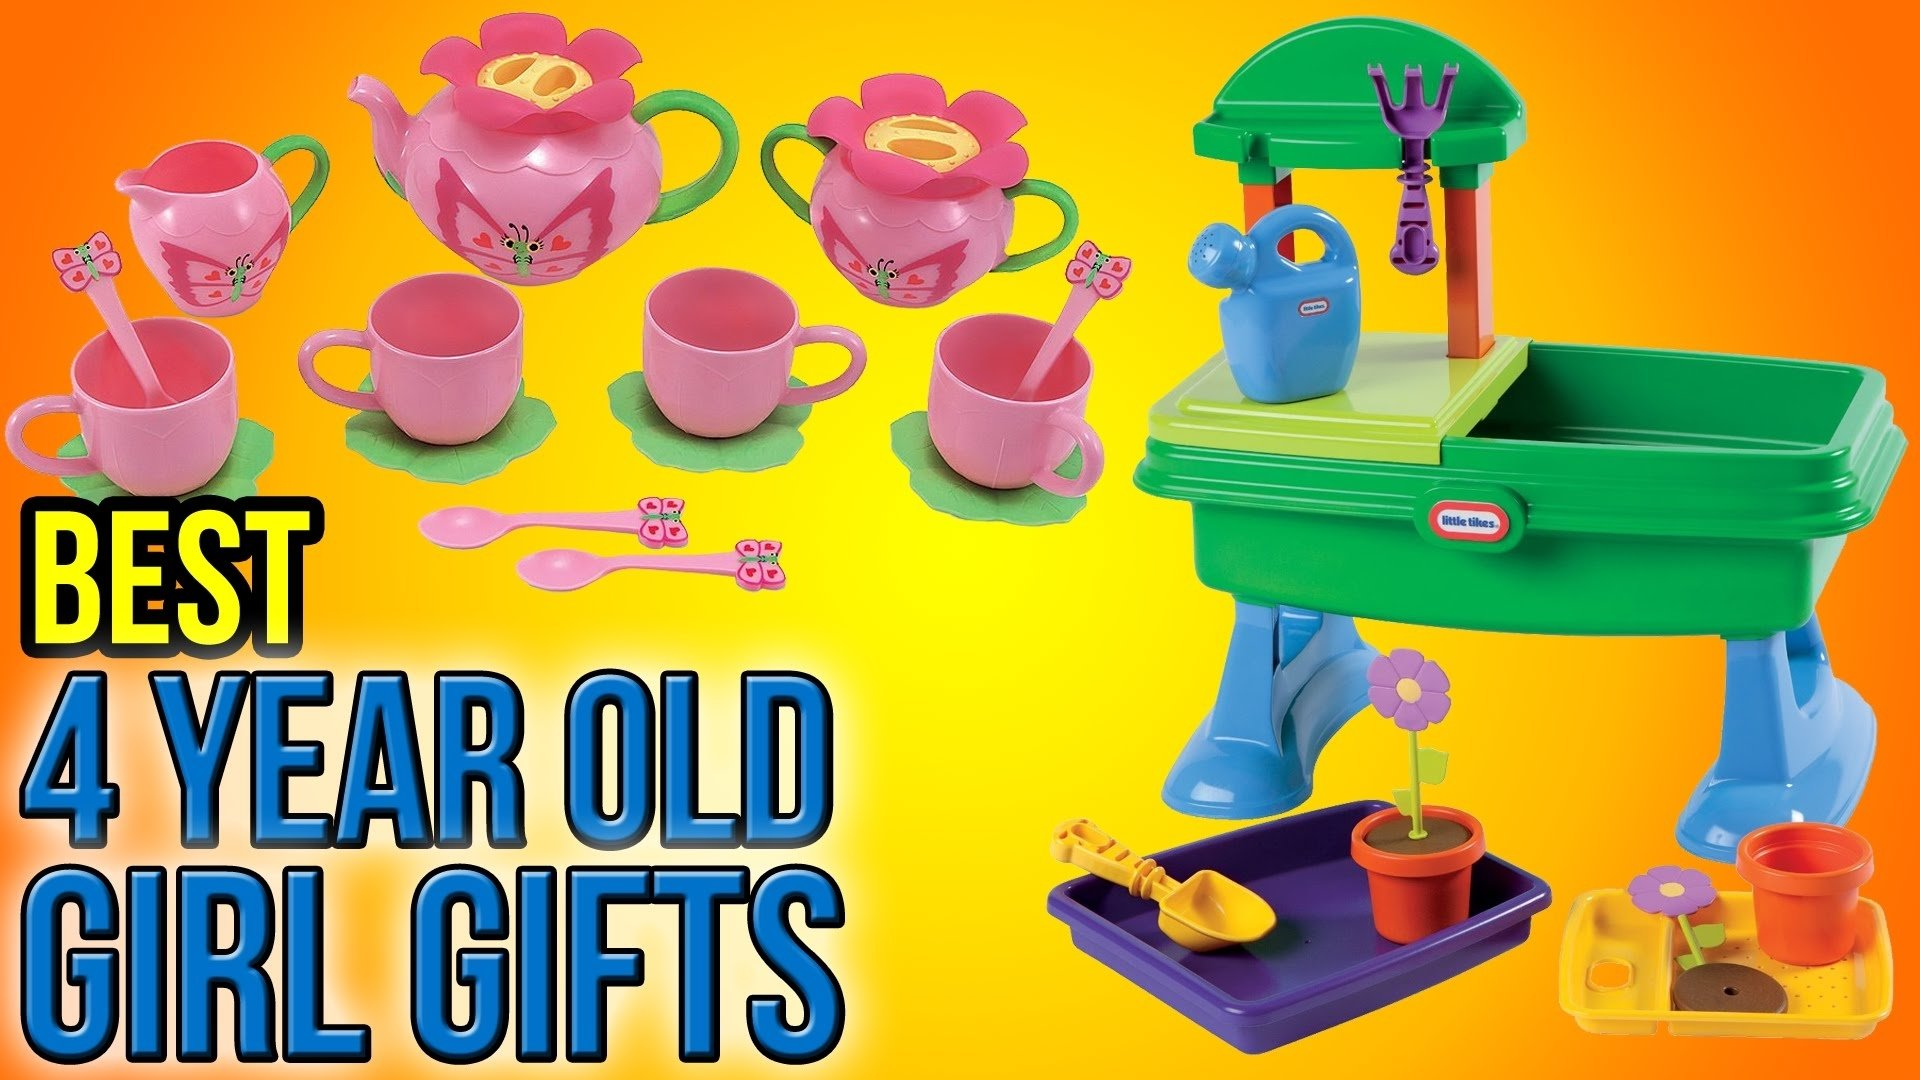 10 best 4 year old girl gifts 2016 - youtube